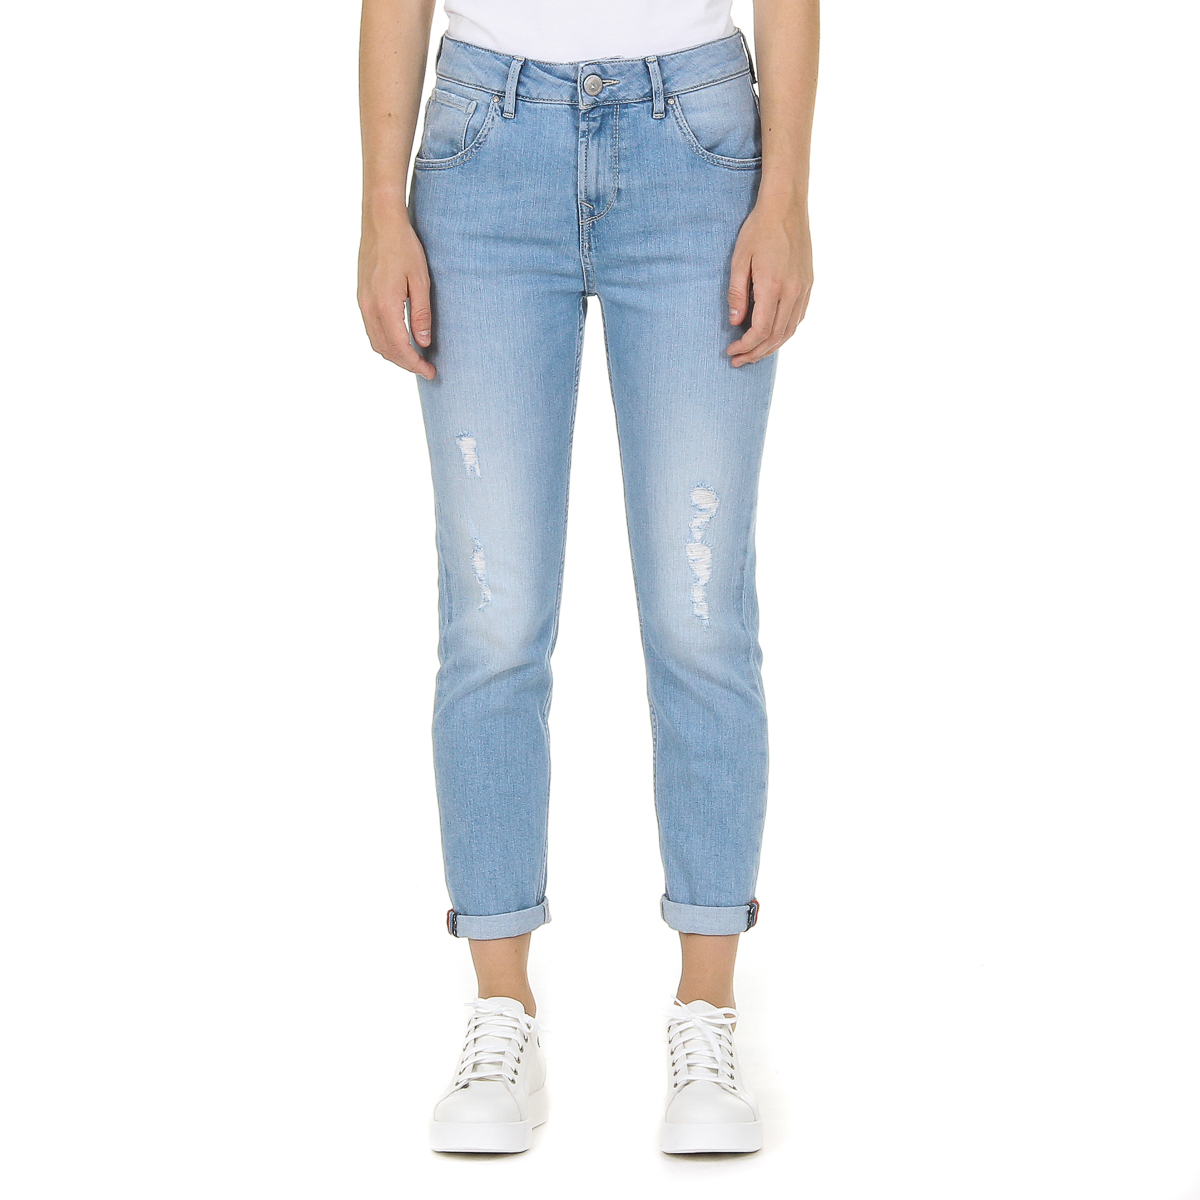 Primary image for Andrew Charles Womens Jeans Denim RACHEL